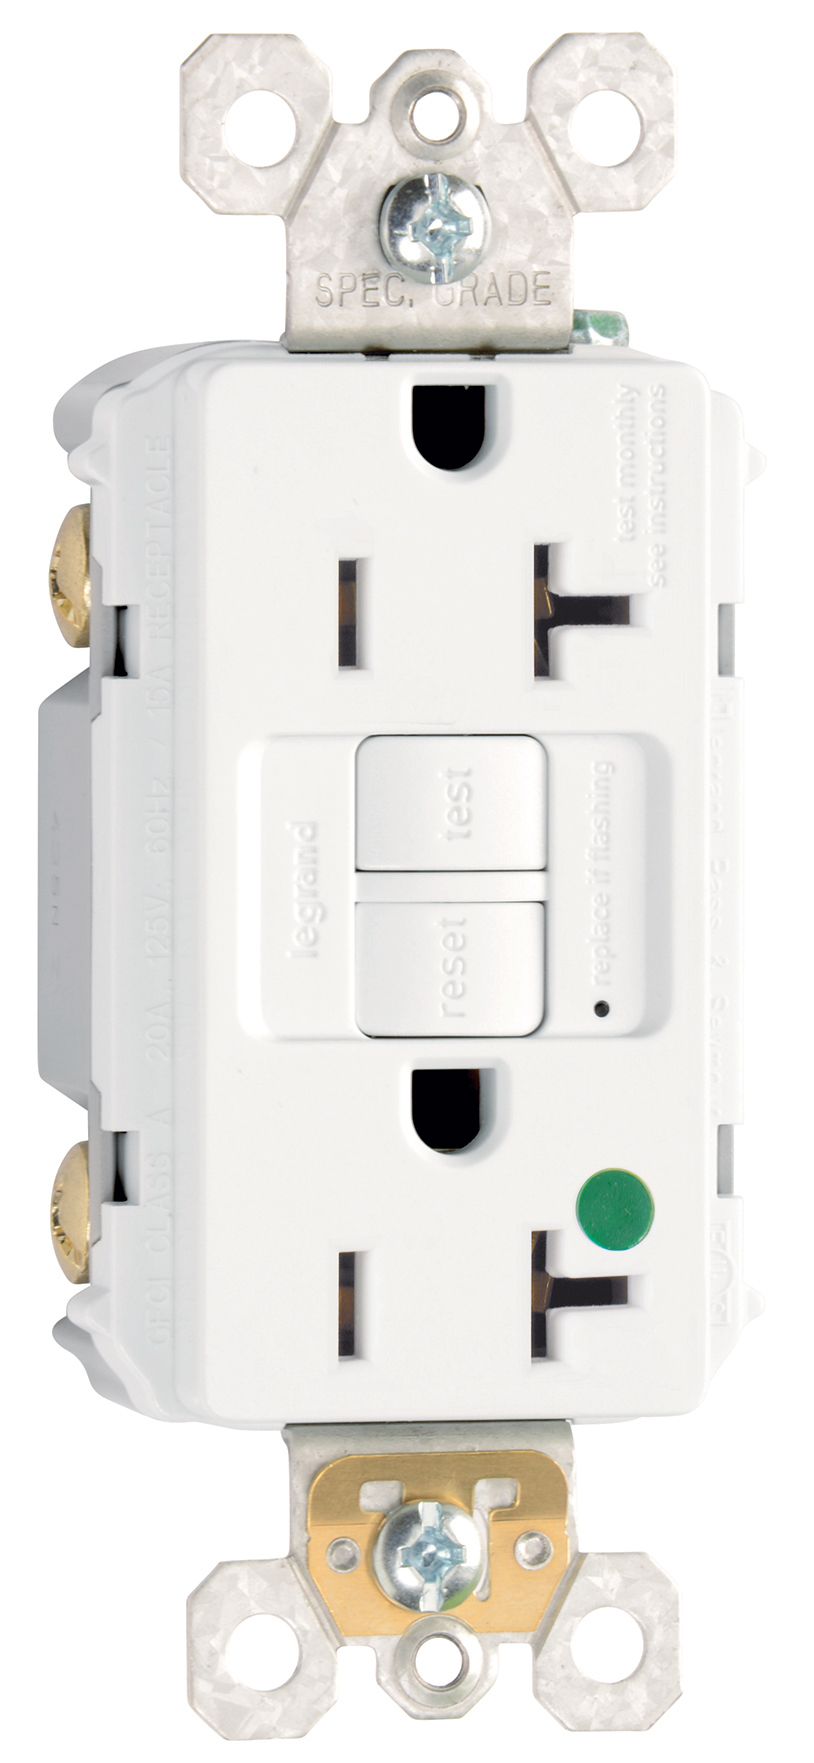 Legrand-Pass & Seymour,2097-HGW,Pass & Seymour® 2097HG Self-Test Duplex GFCI Receptacle With Matching TP Wall Plate, 125 VAC, 20 A, 2 Poles, 3 Wires